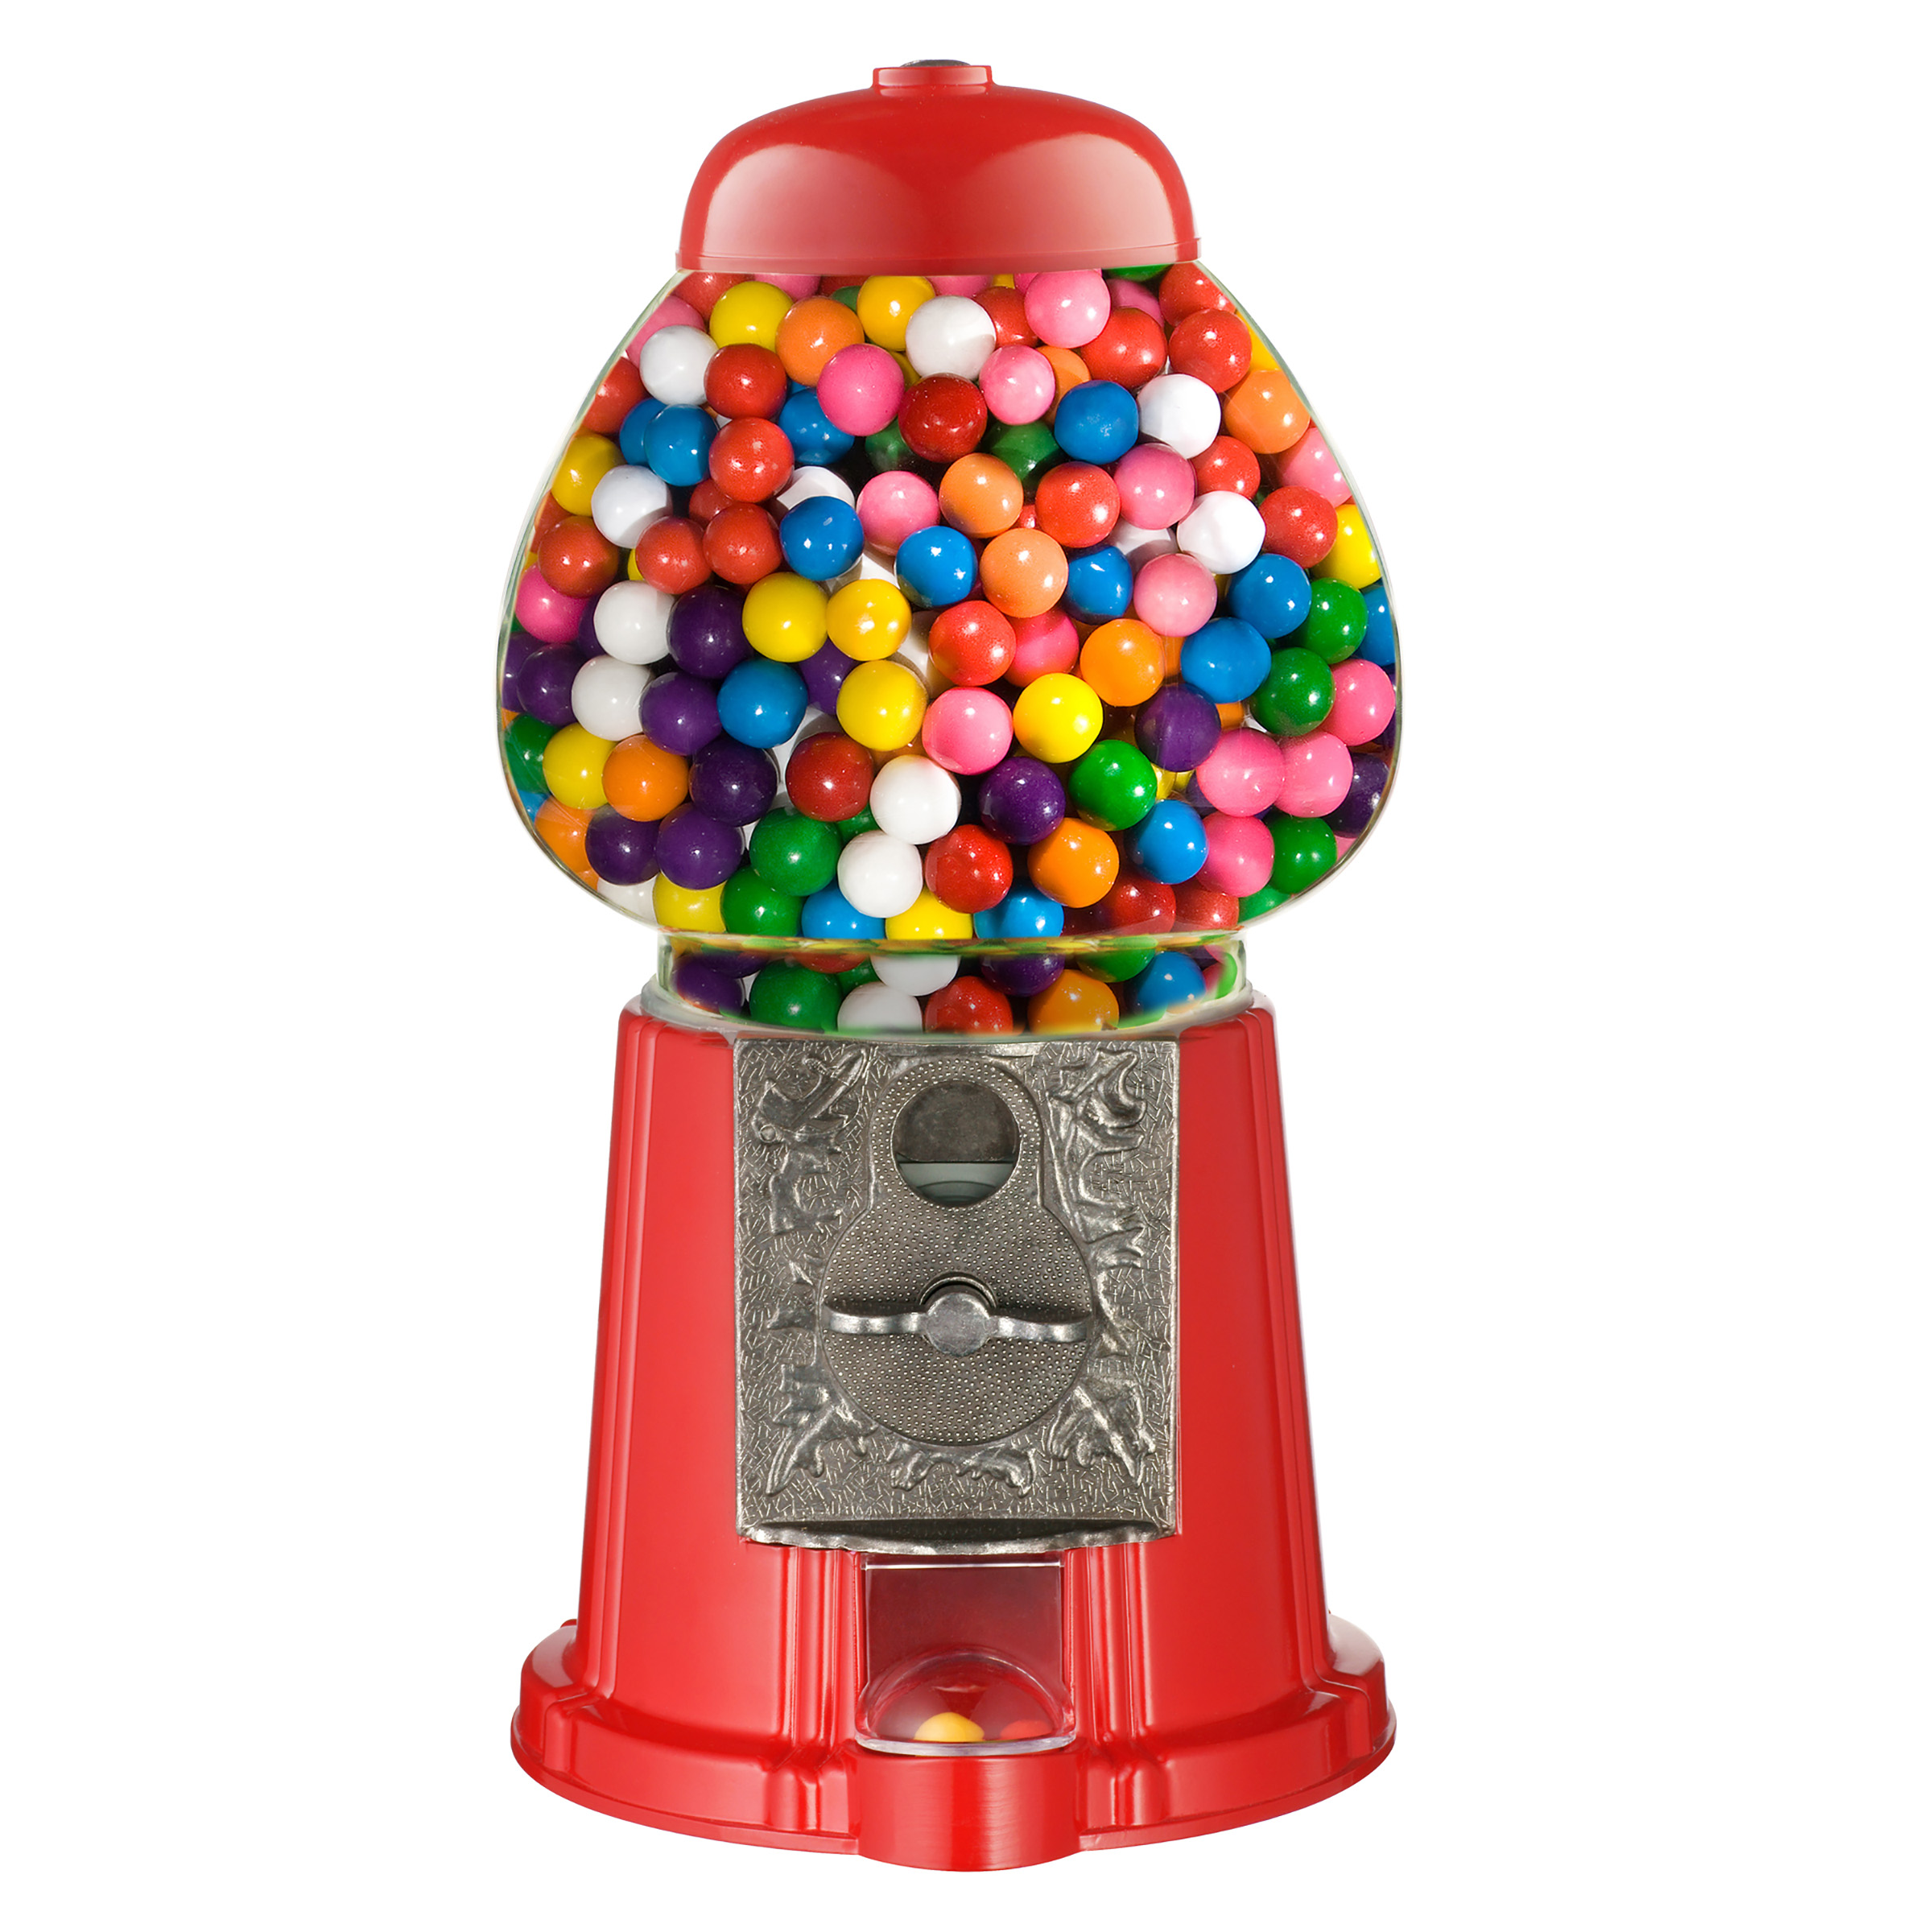 """15"""" Old Fashioned Vintage Candy Gumball Machine Bank by Great Northern Popcorn"""